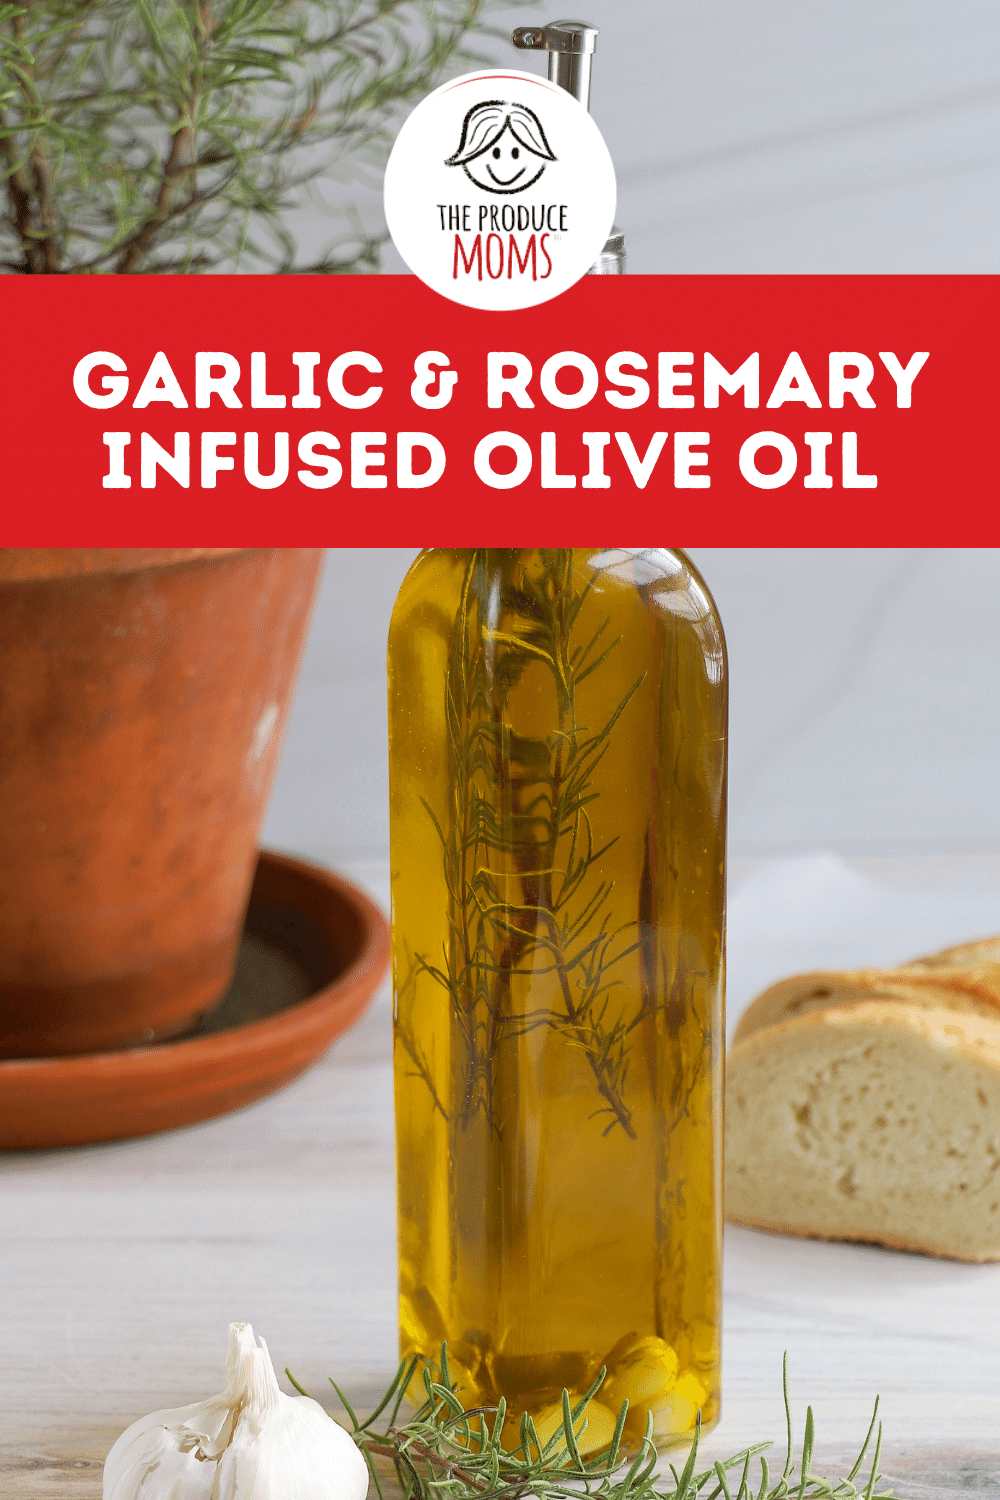 Garlic and Rosemary Infused Olive Oil